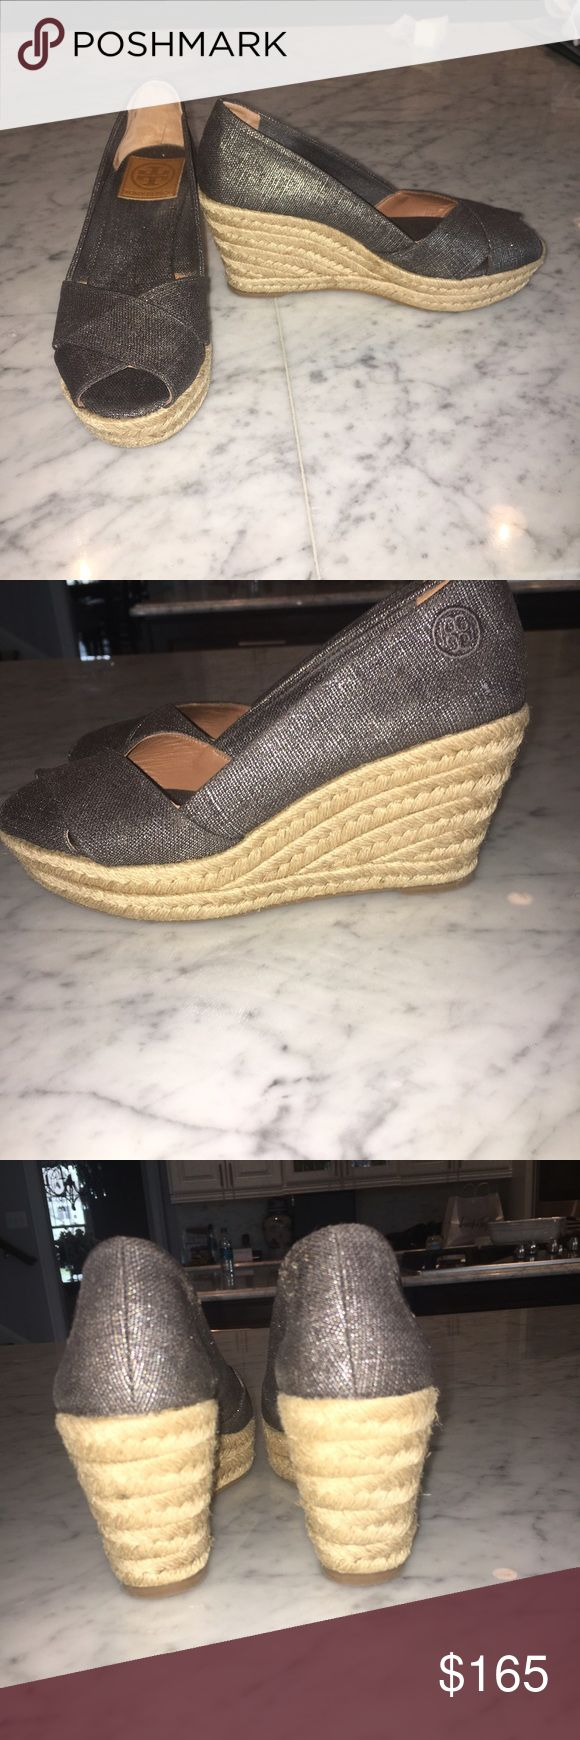 Tory Burch Peep toe espadrille wedge! Worn once, Tory Burch espadrille metallic wedge heel. In perfect condition Tory Burch Shoes Wedges